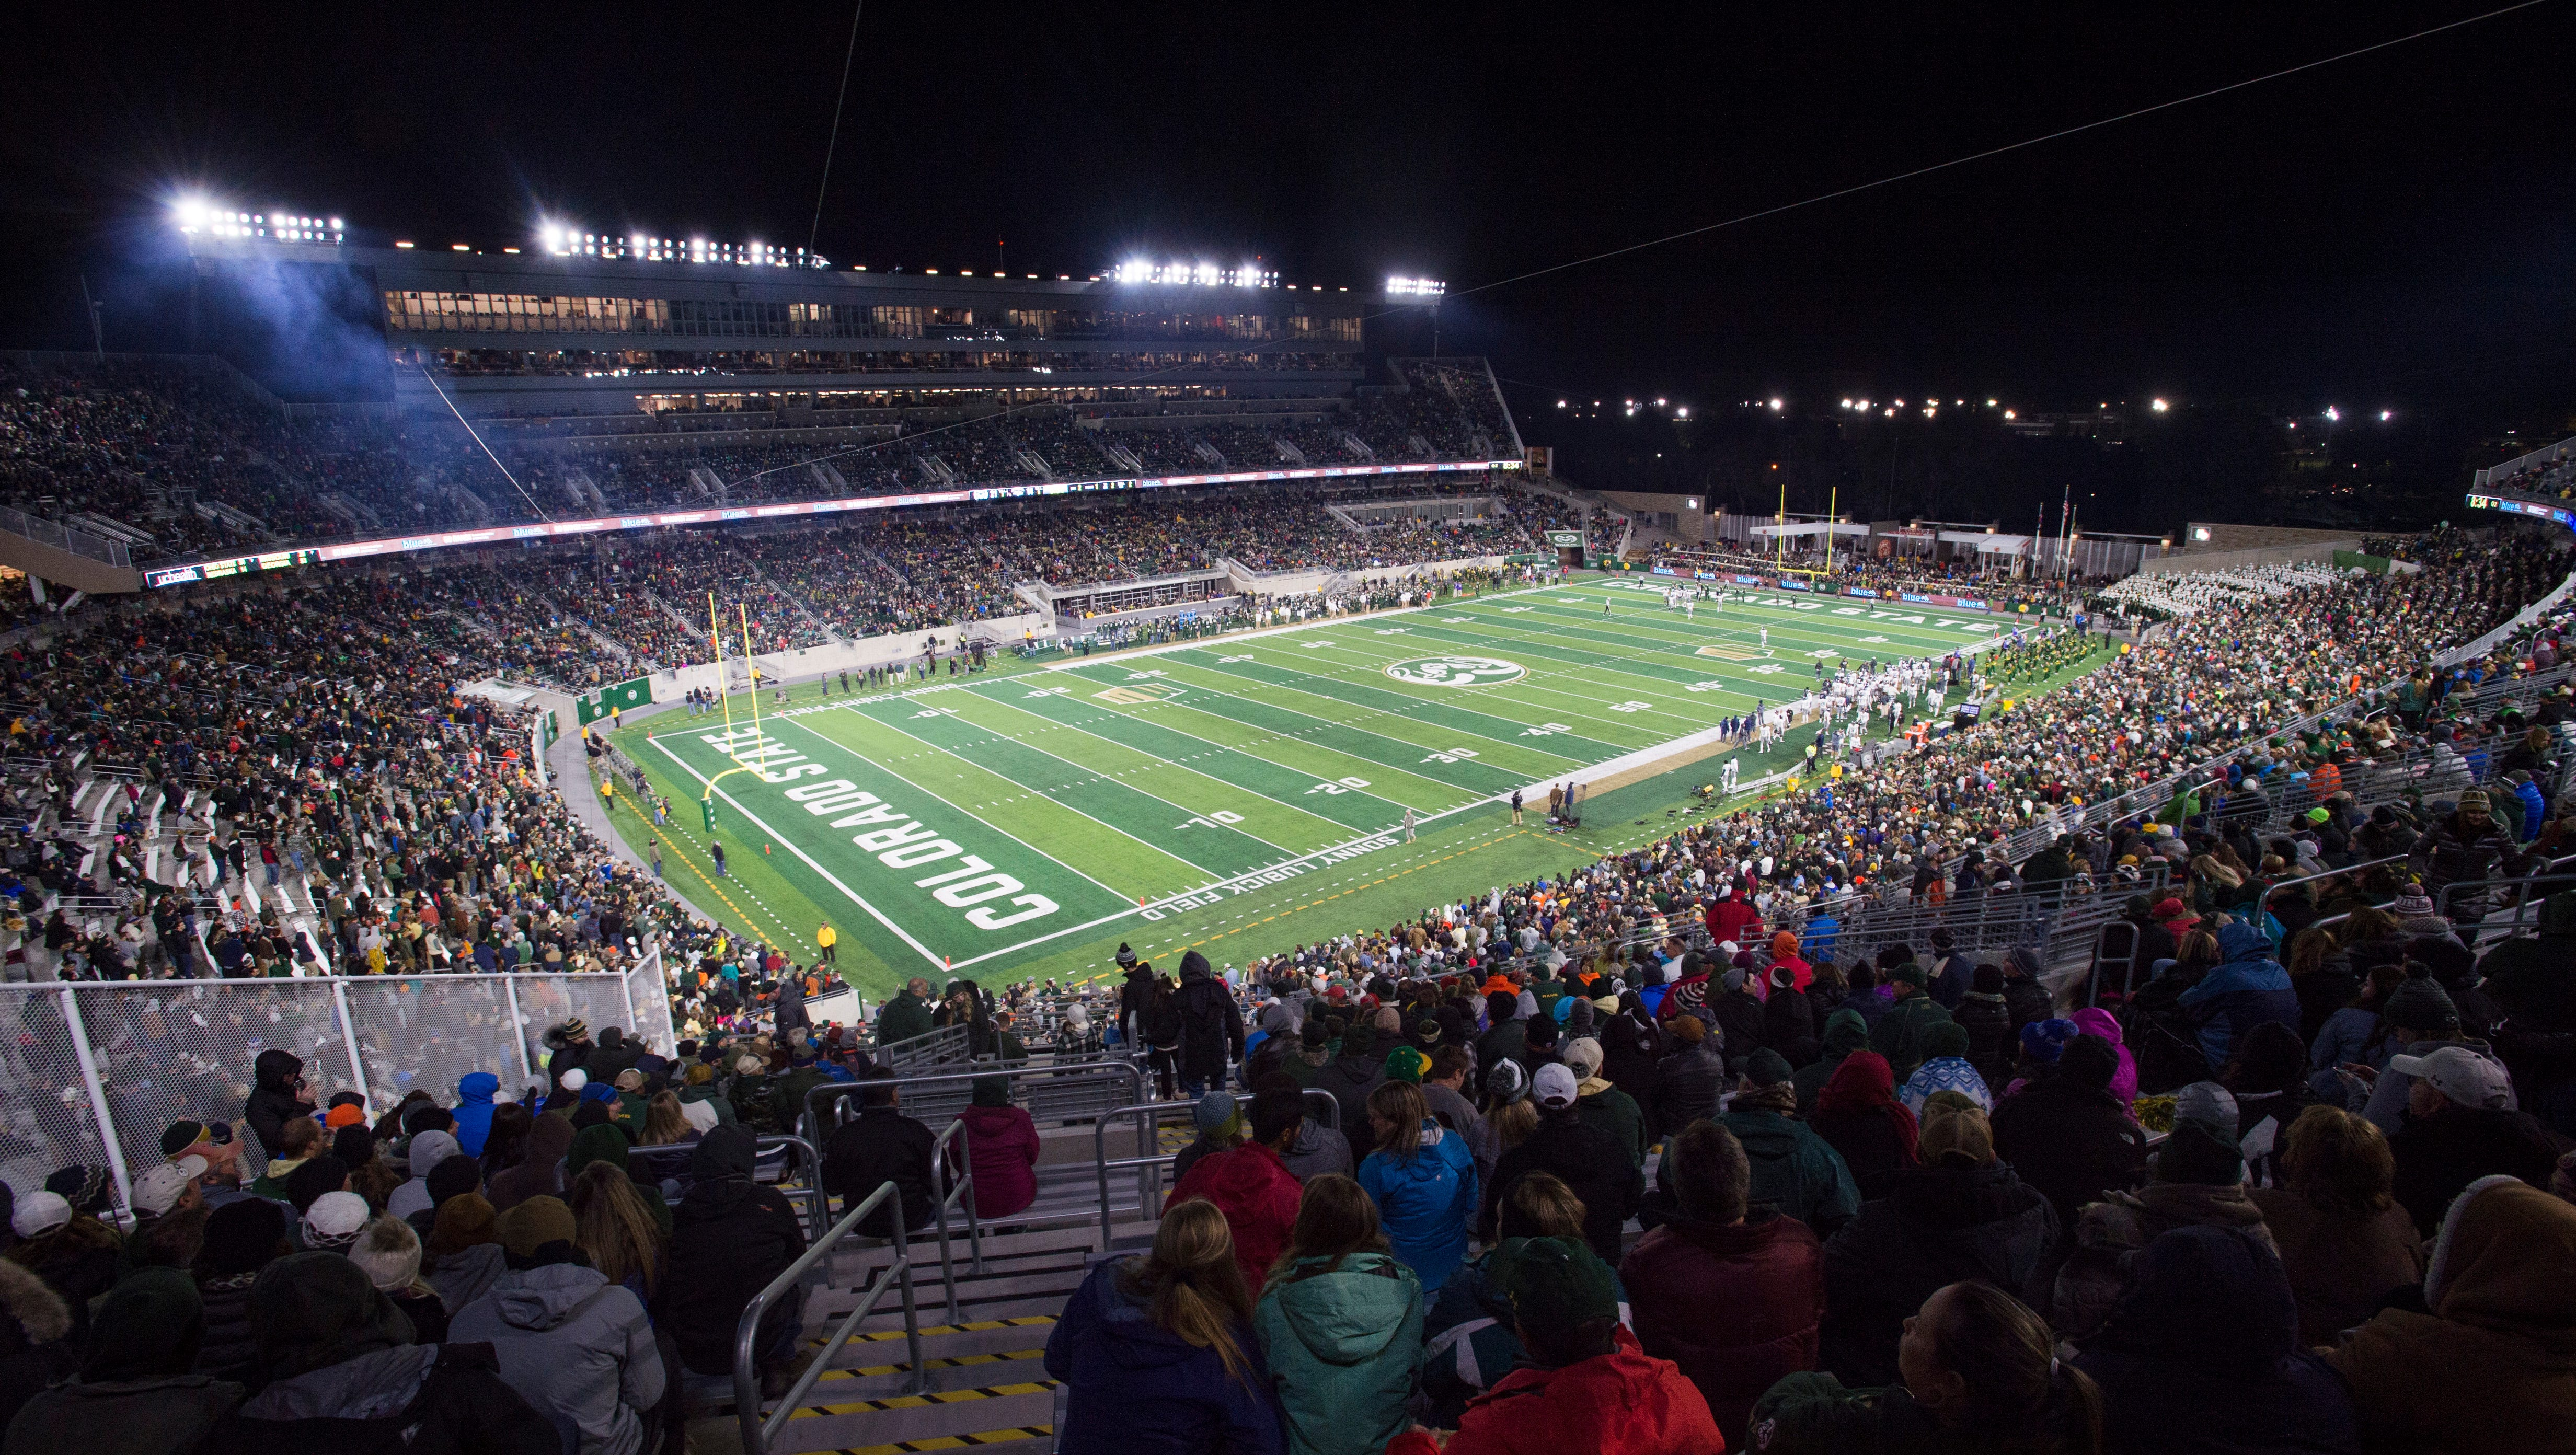 Csu Tries To Lure Fans Who Leave Football Game Early